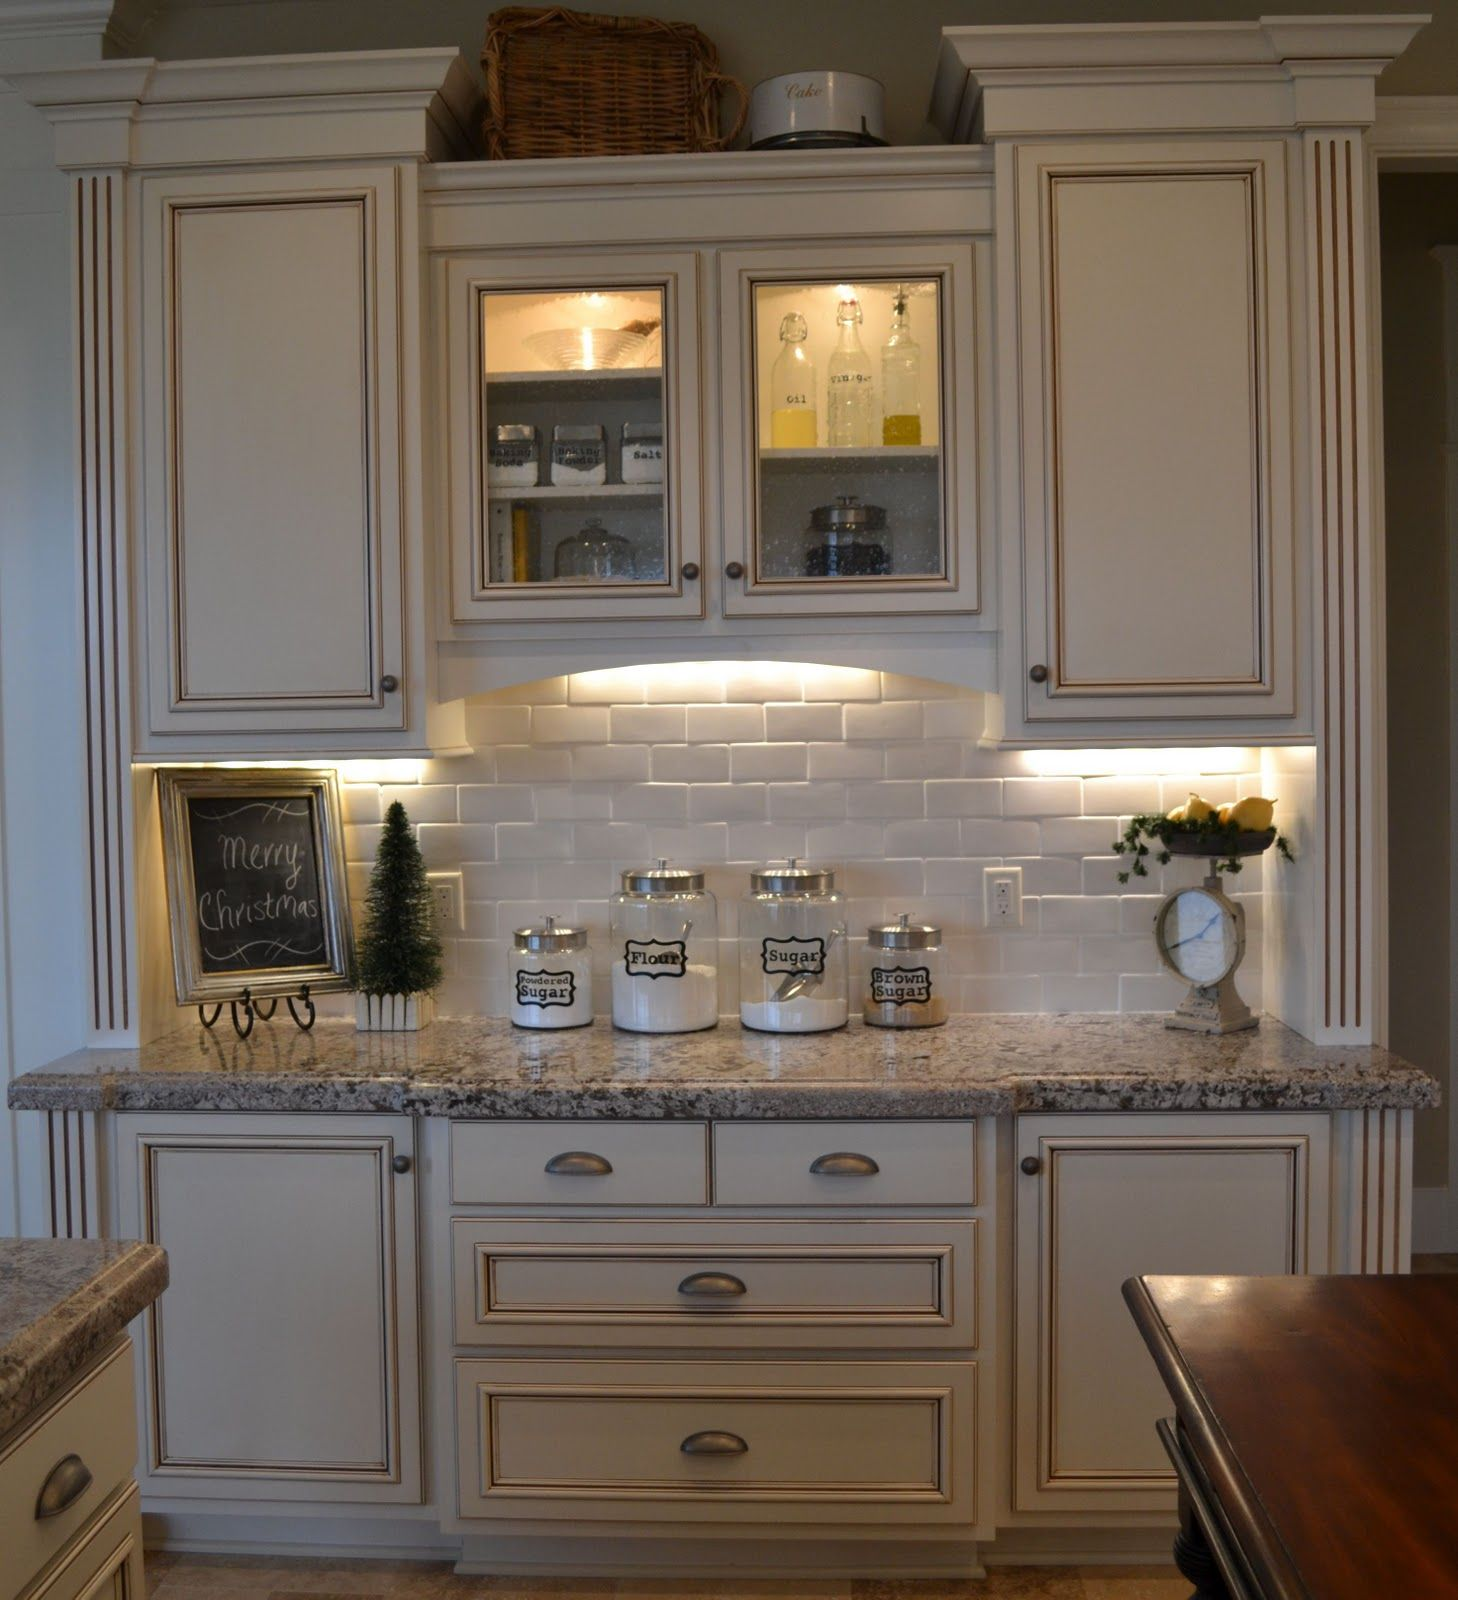 Baking Center Type Of Area The Little Valance In The